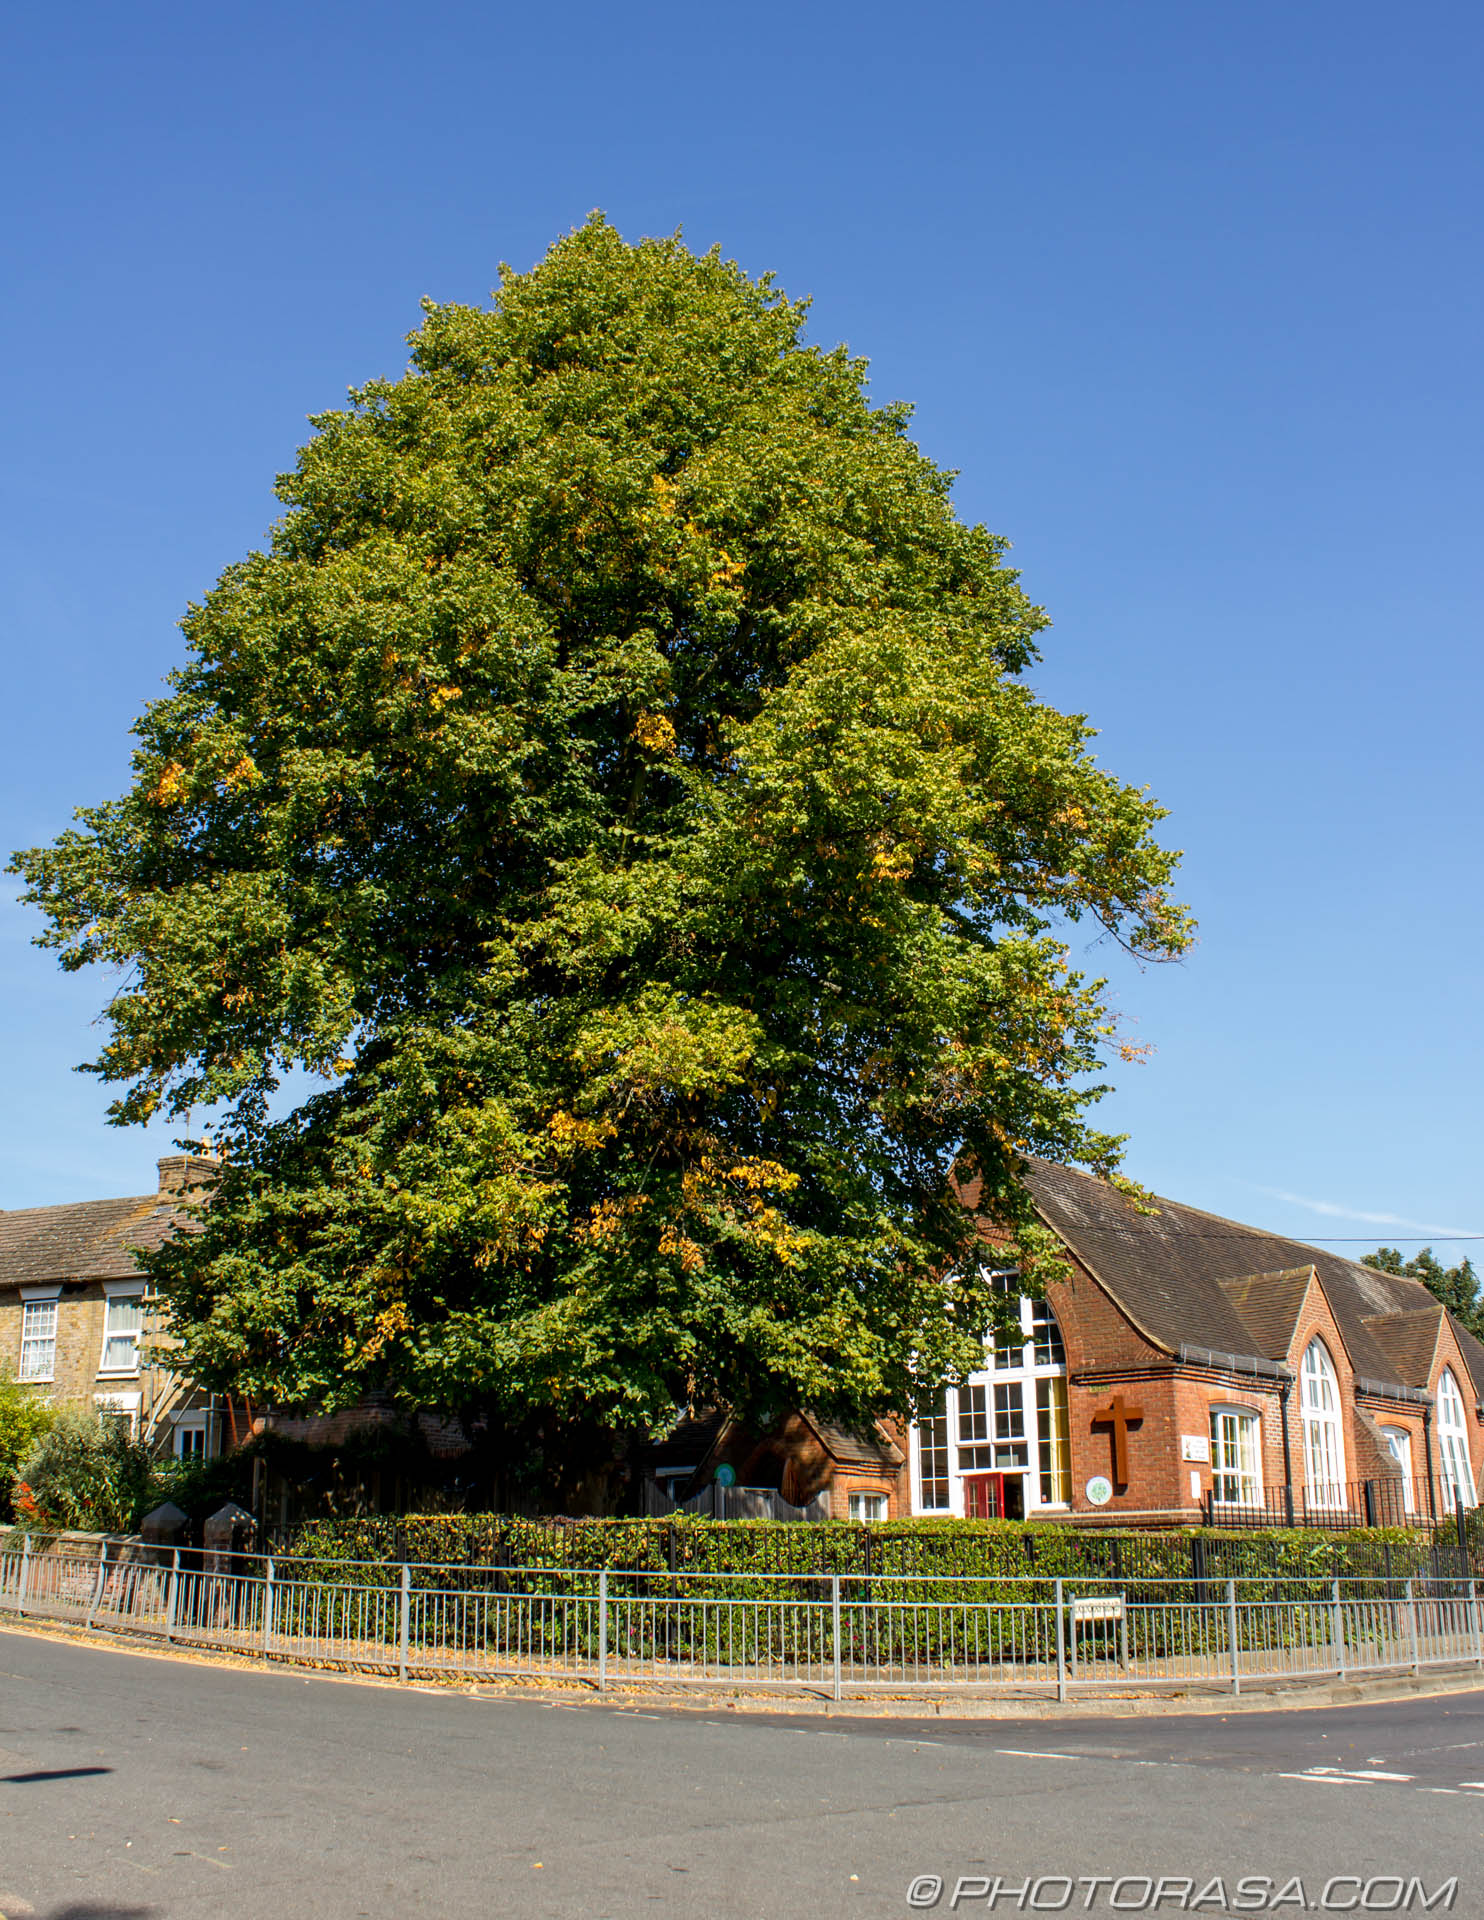 https://photorasa.com/maidstone/large-oak-tree-outside-school/